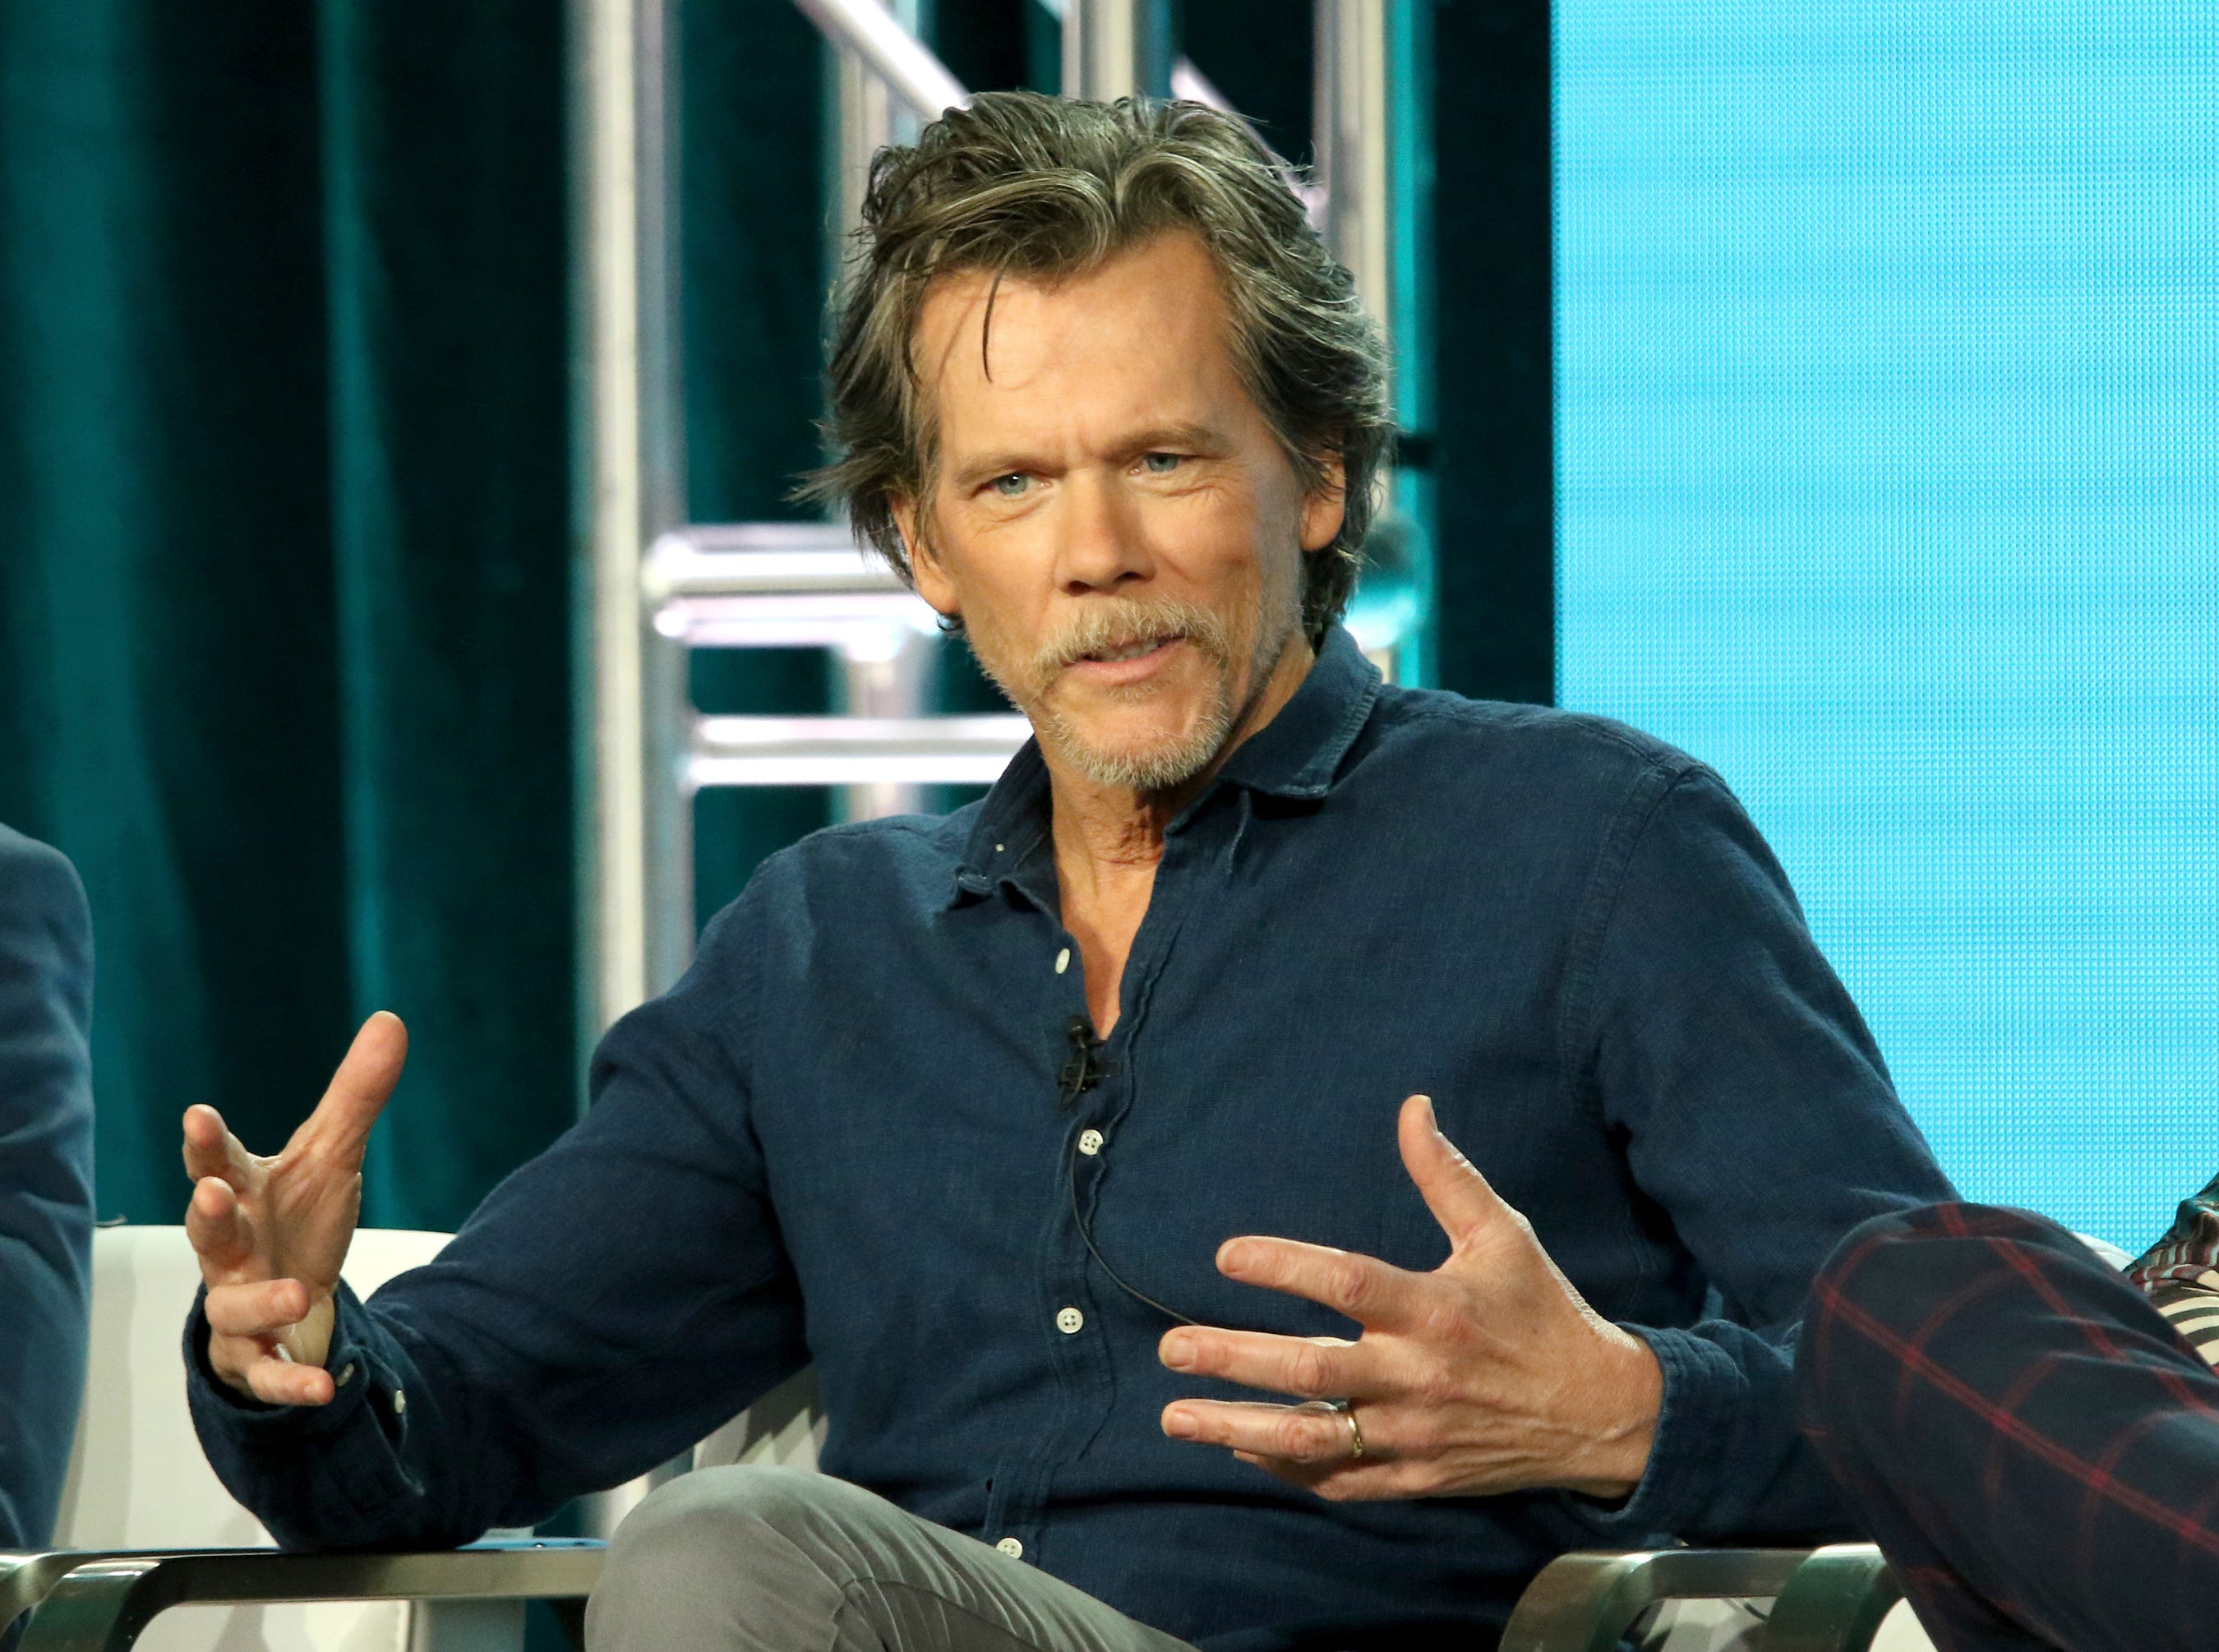 """Kevin Bacon will star as a veteran FBI agent on """"City on a Hill,"""" premiering later this year on Showtime."""